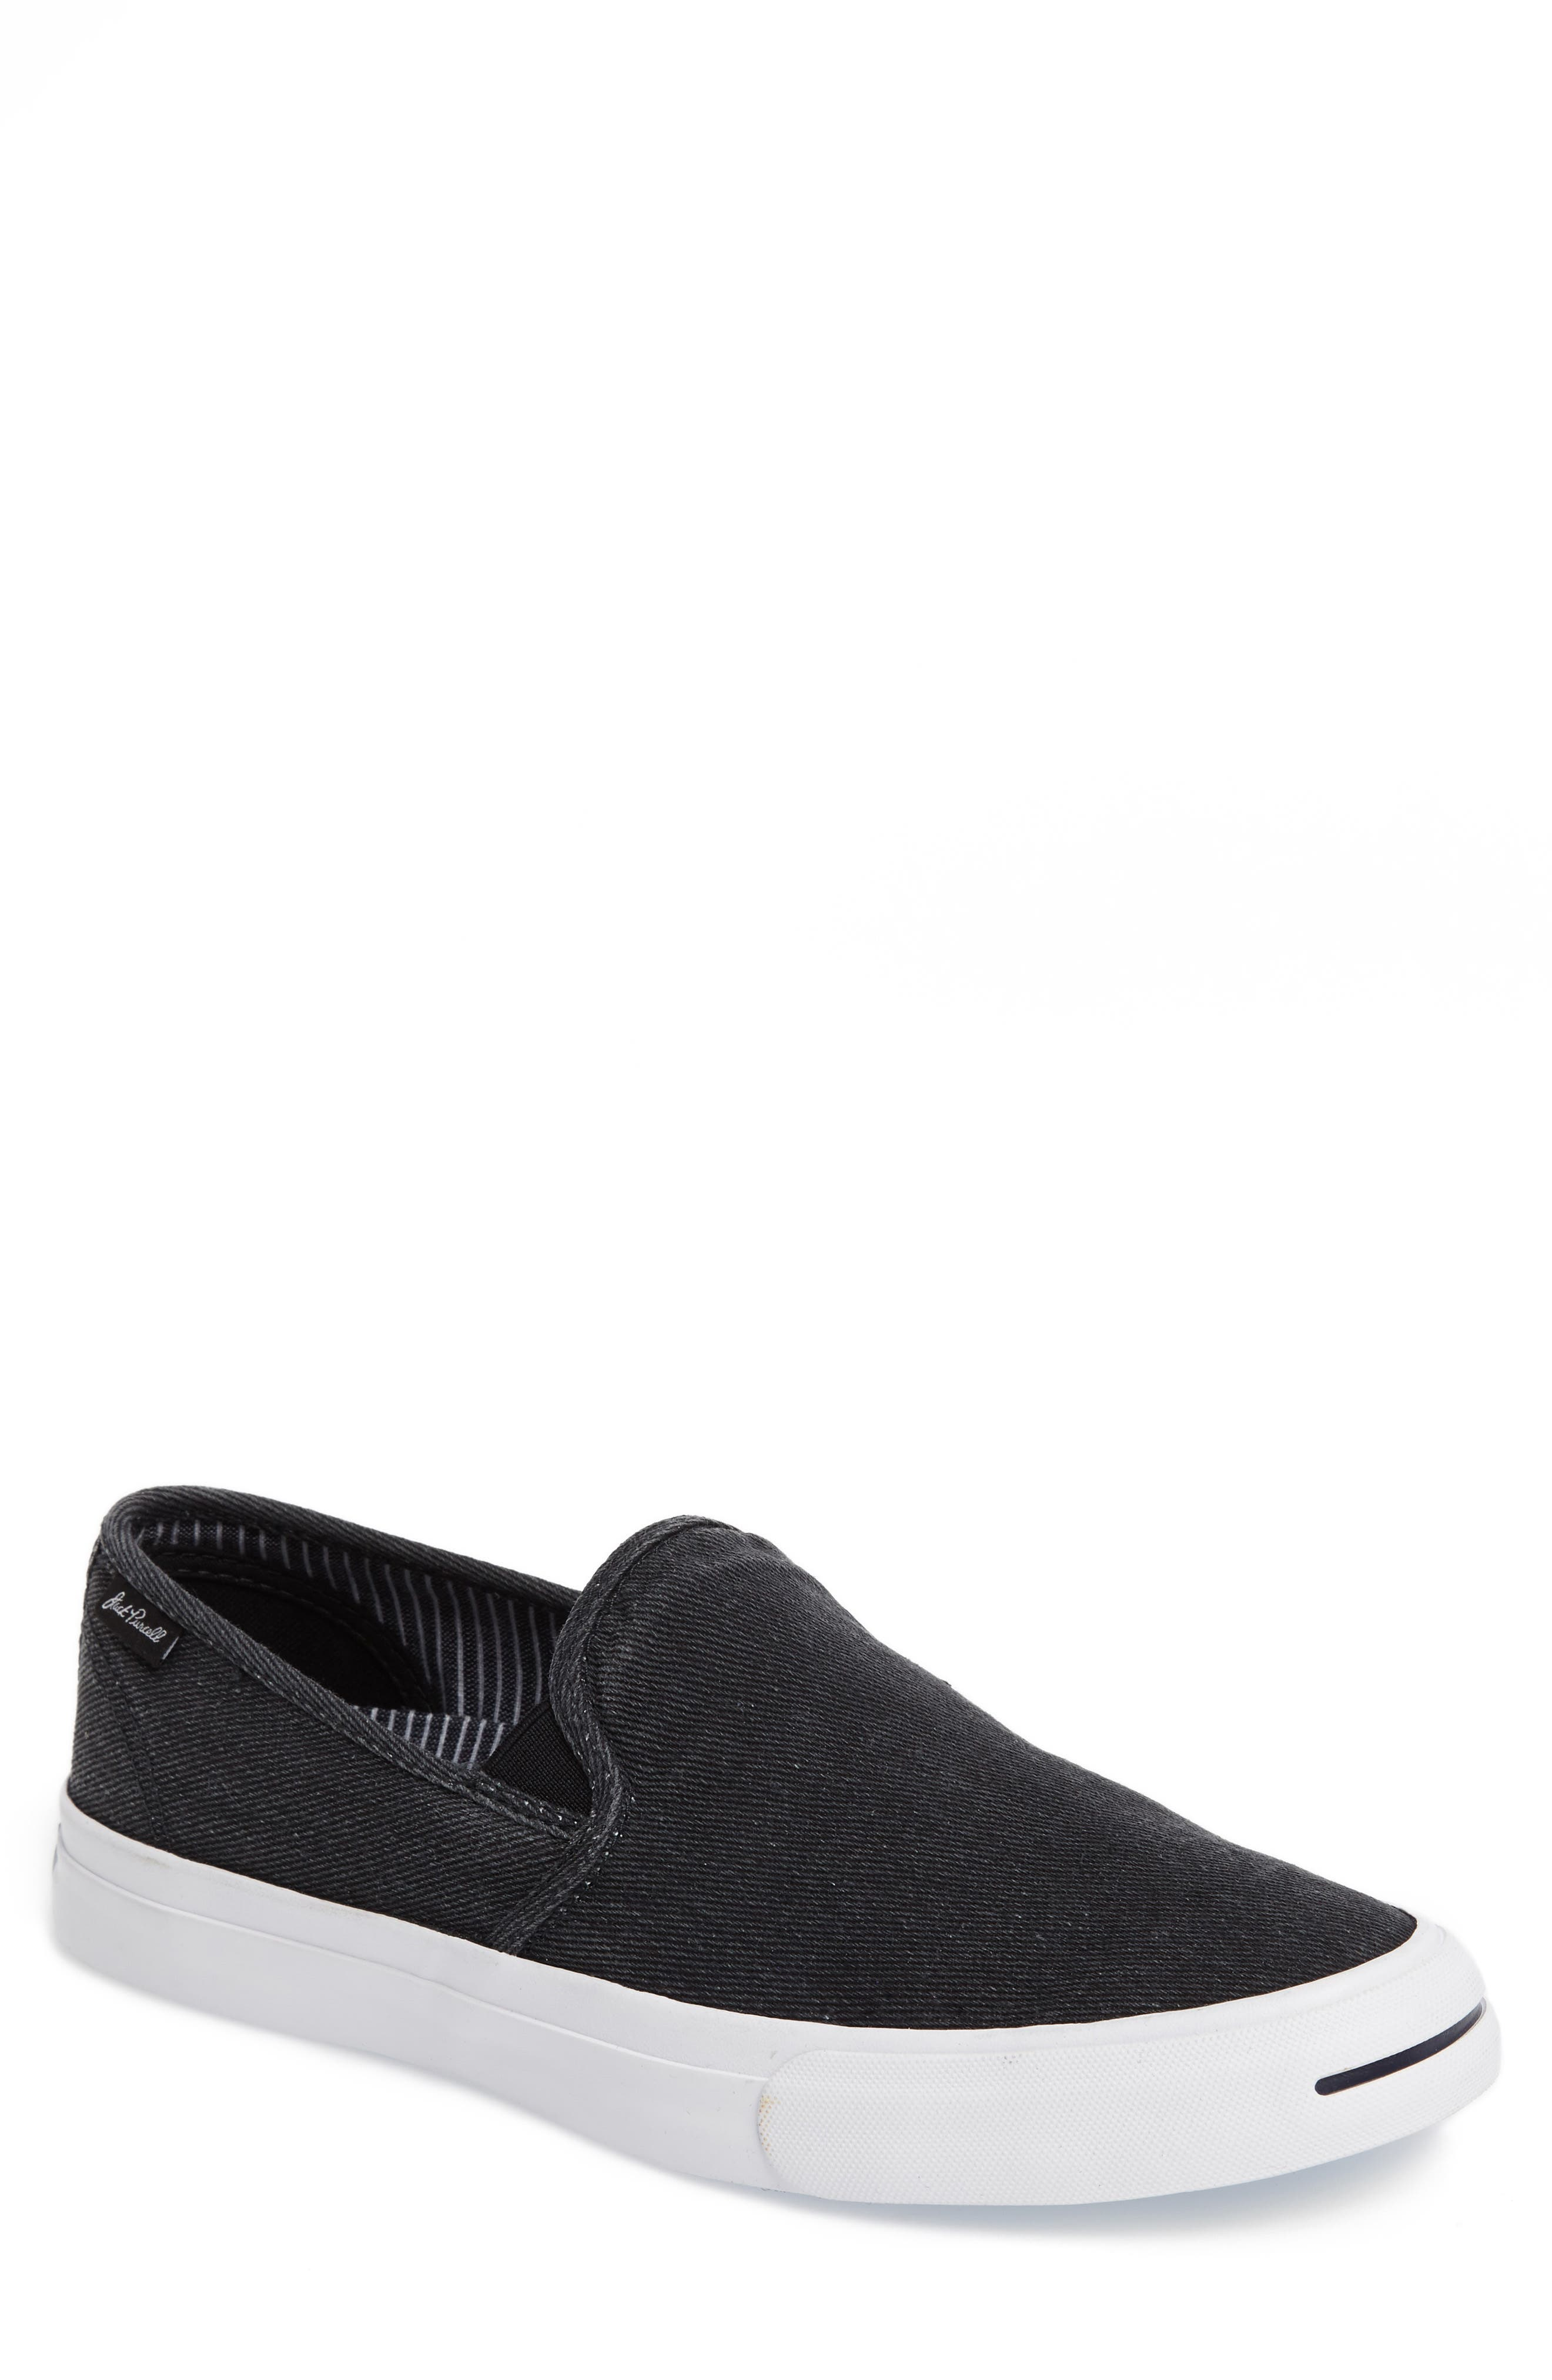 Jack Purcell II Slip-On,                             Main thumbnail 3, color,